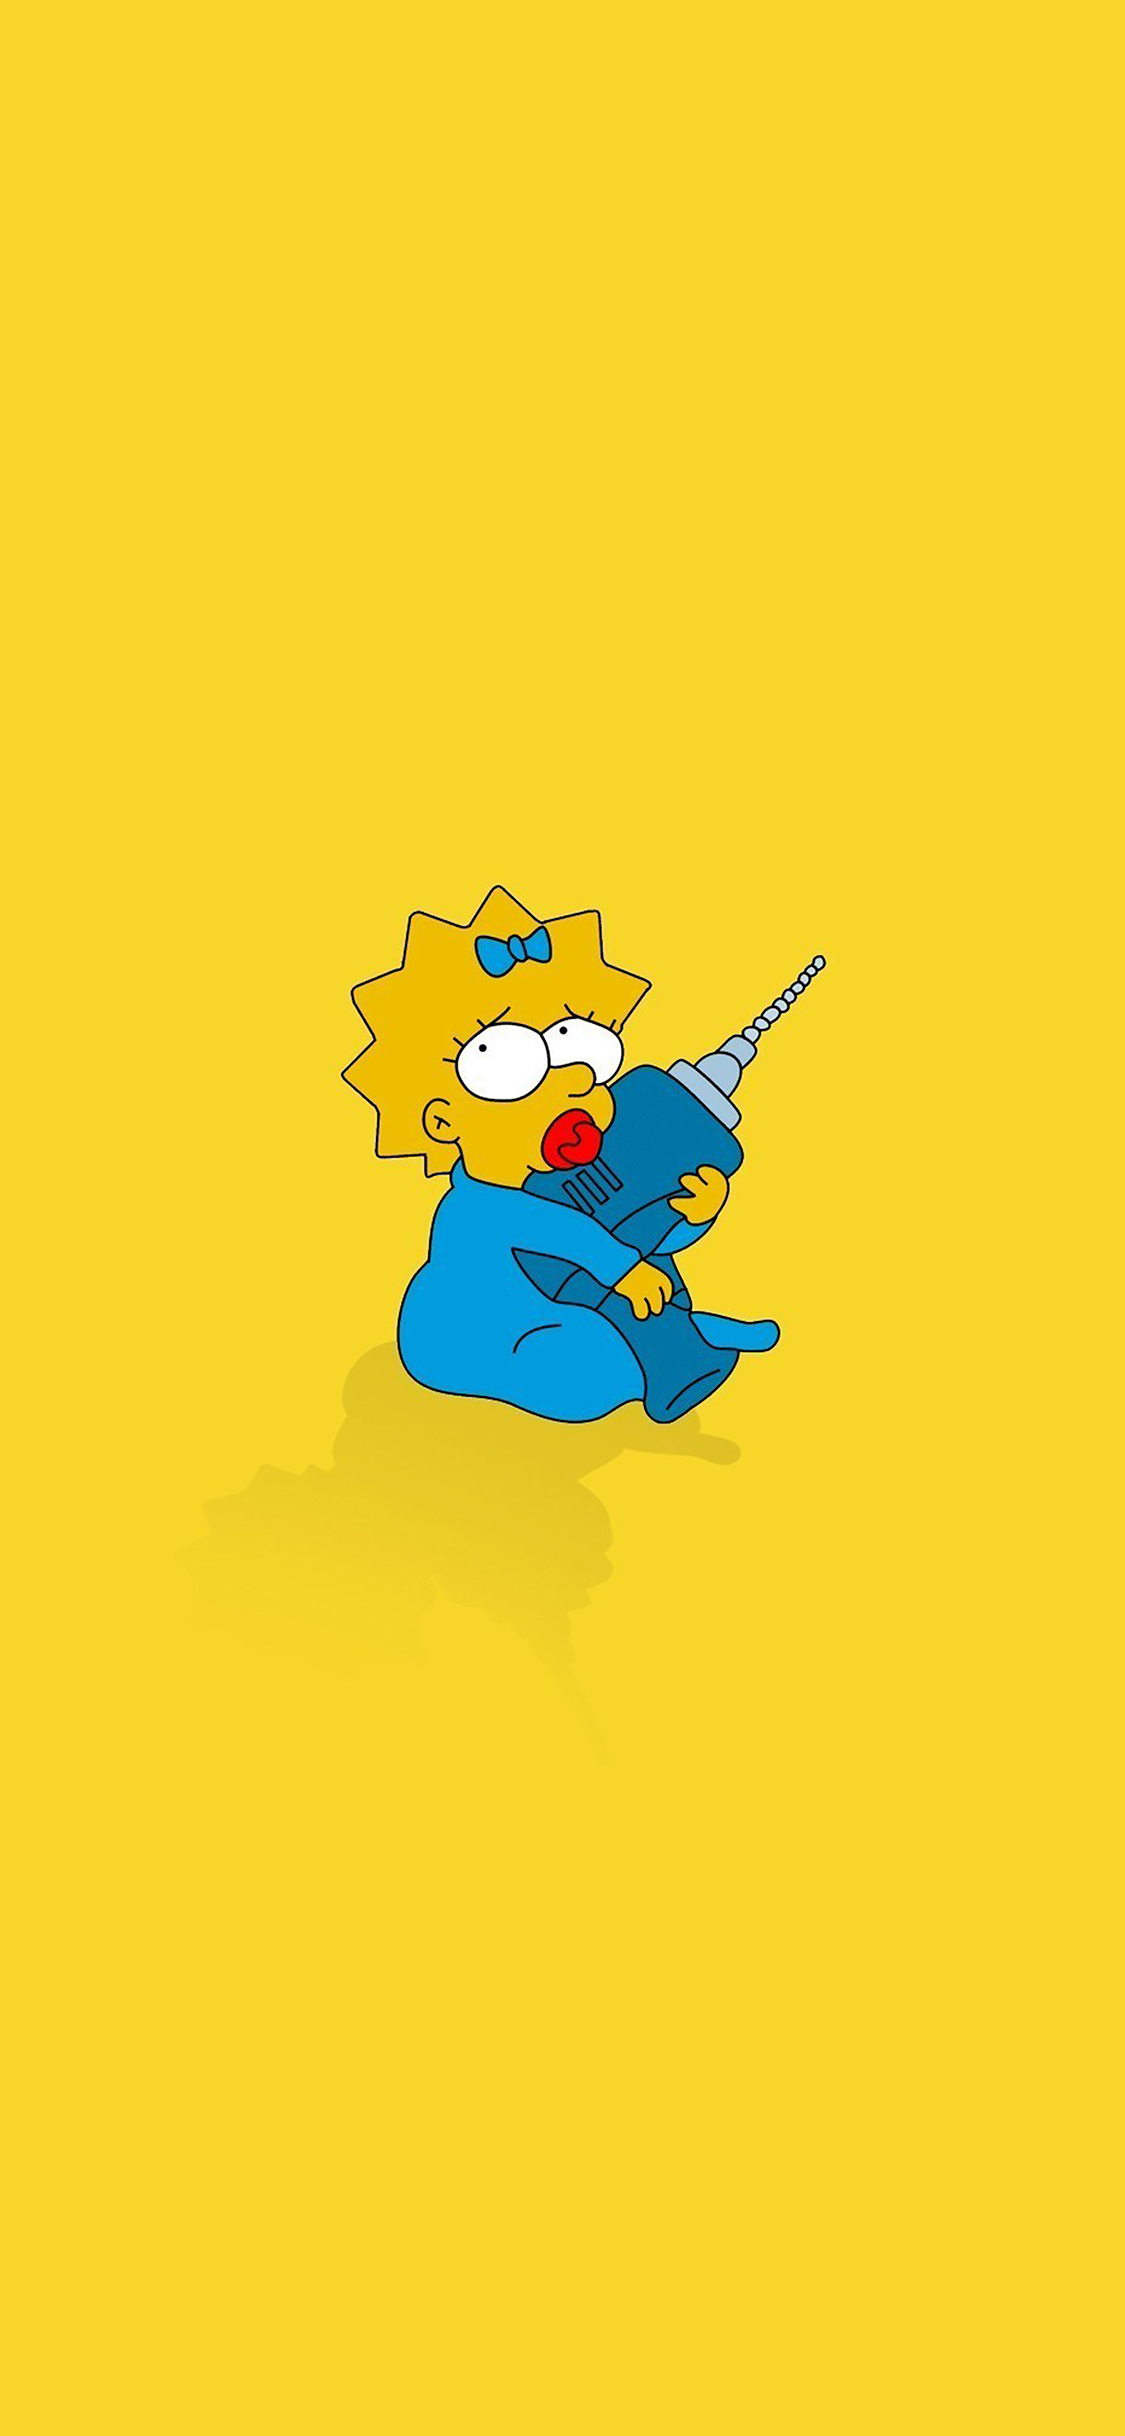 Iphone11papers Com Iphone11 Wallpaper Af69 Simpsons Maggie